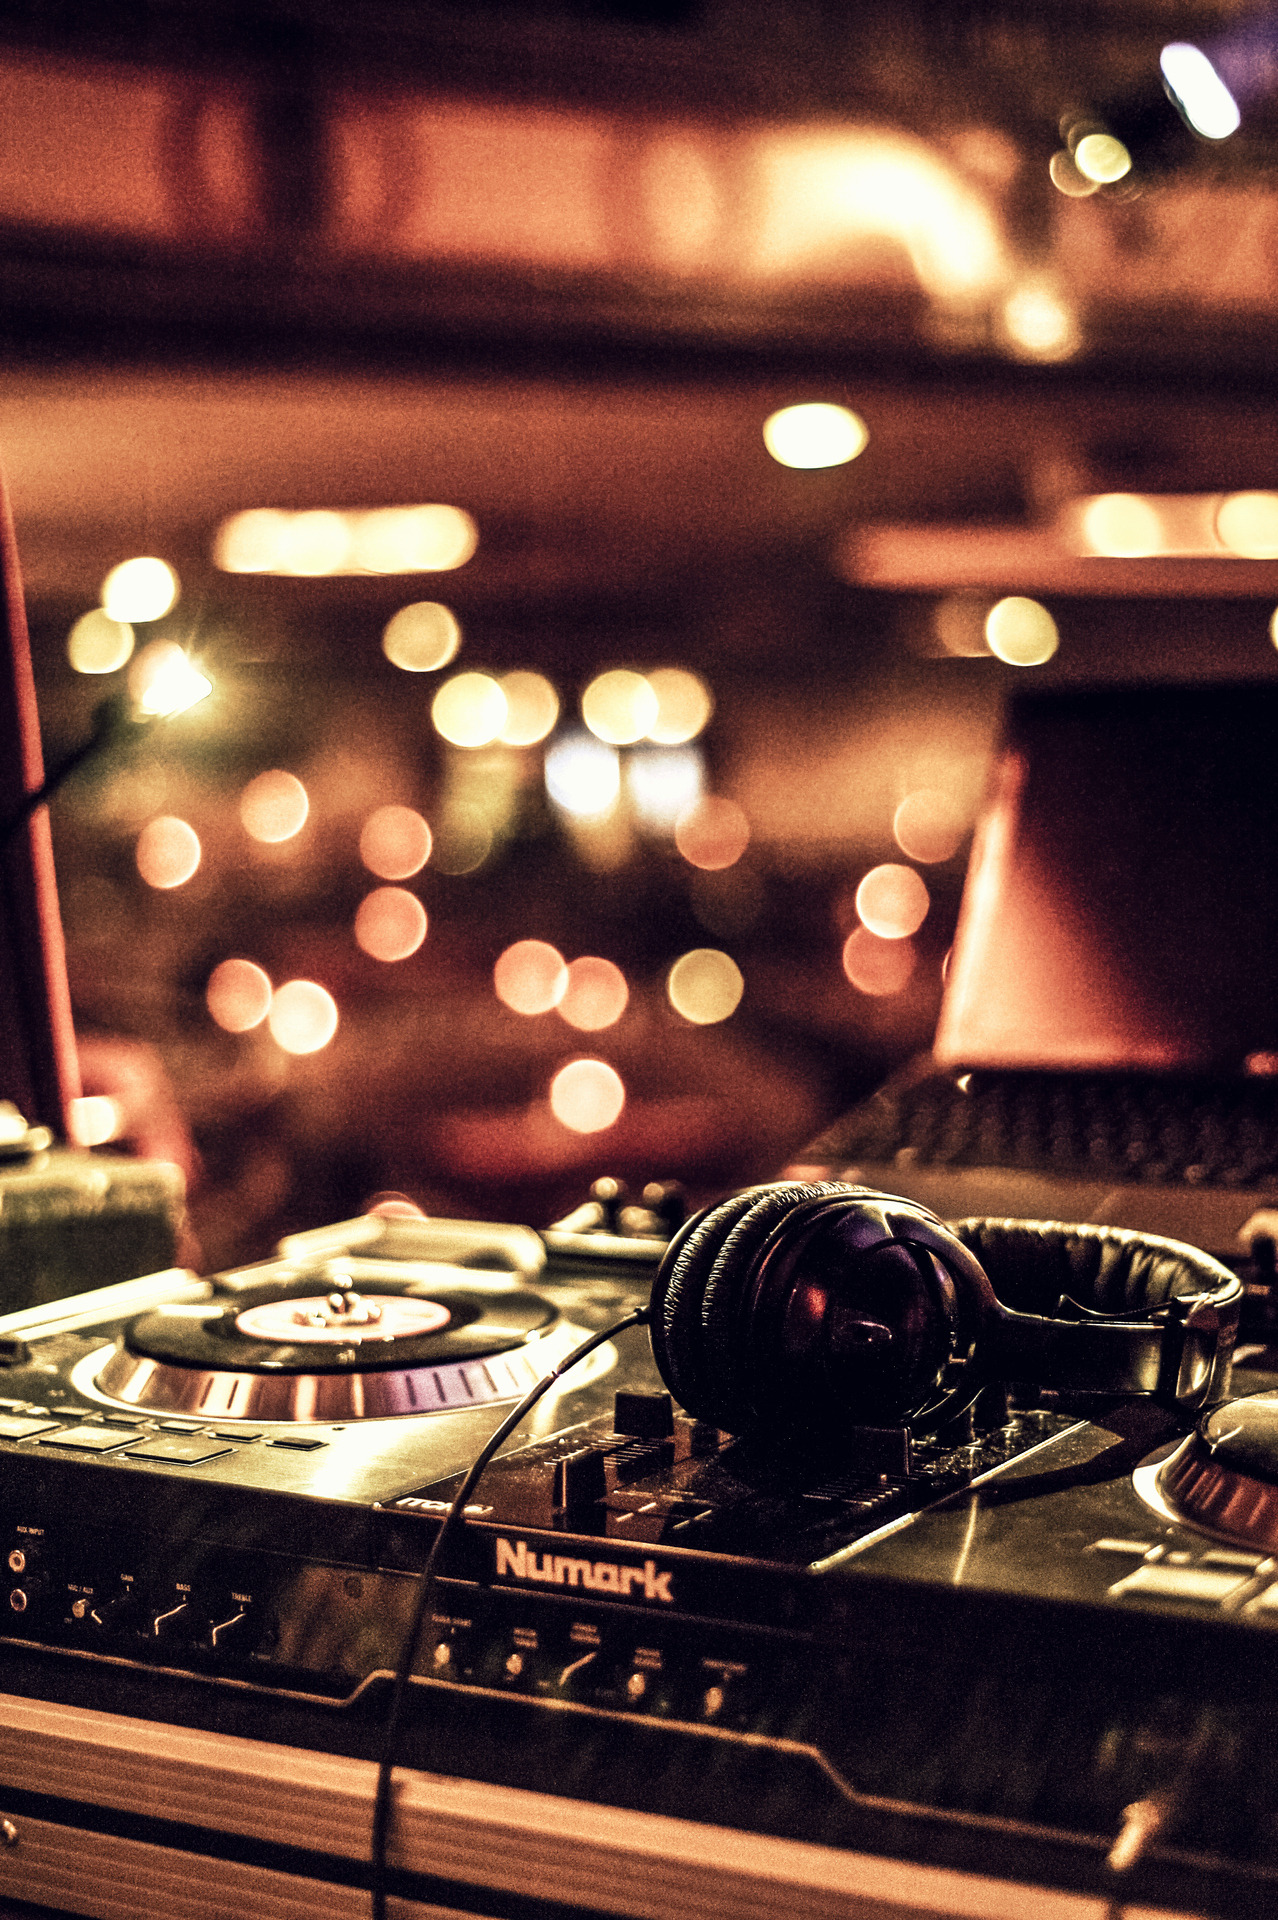 benrheaultpictures:  Audio equipment  - DJ DNT